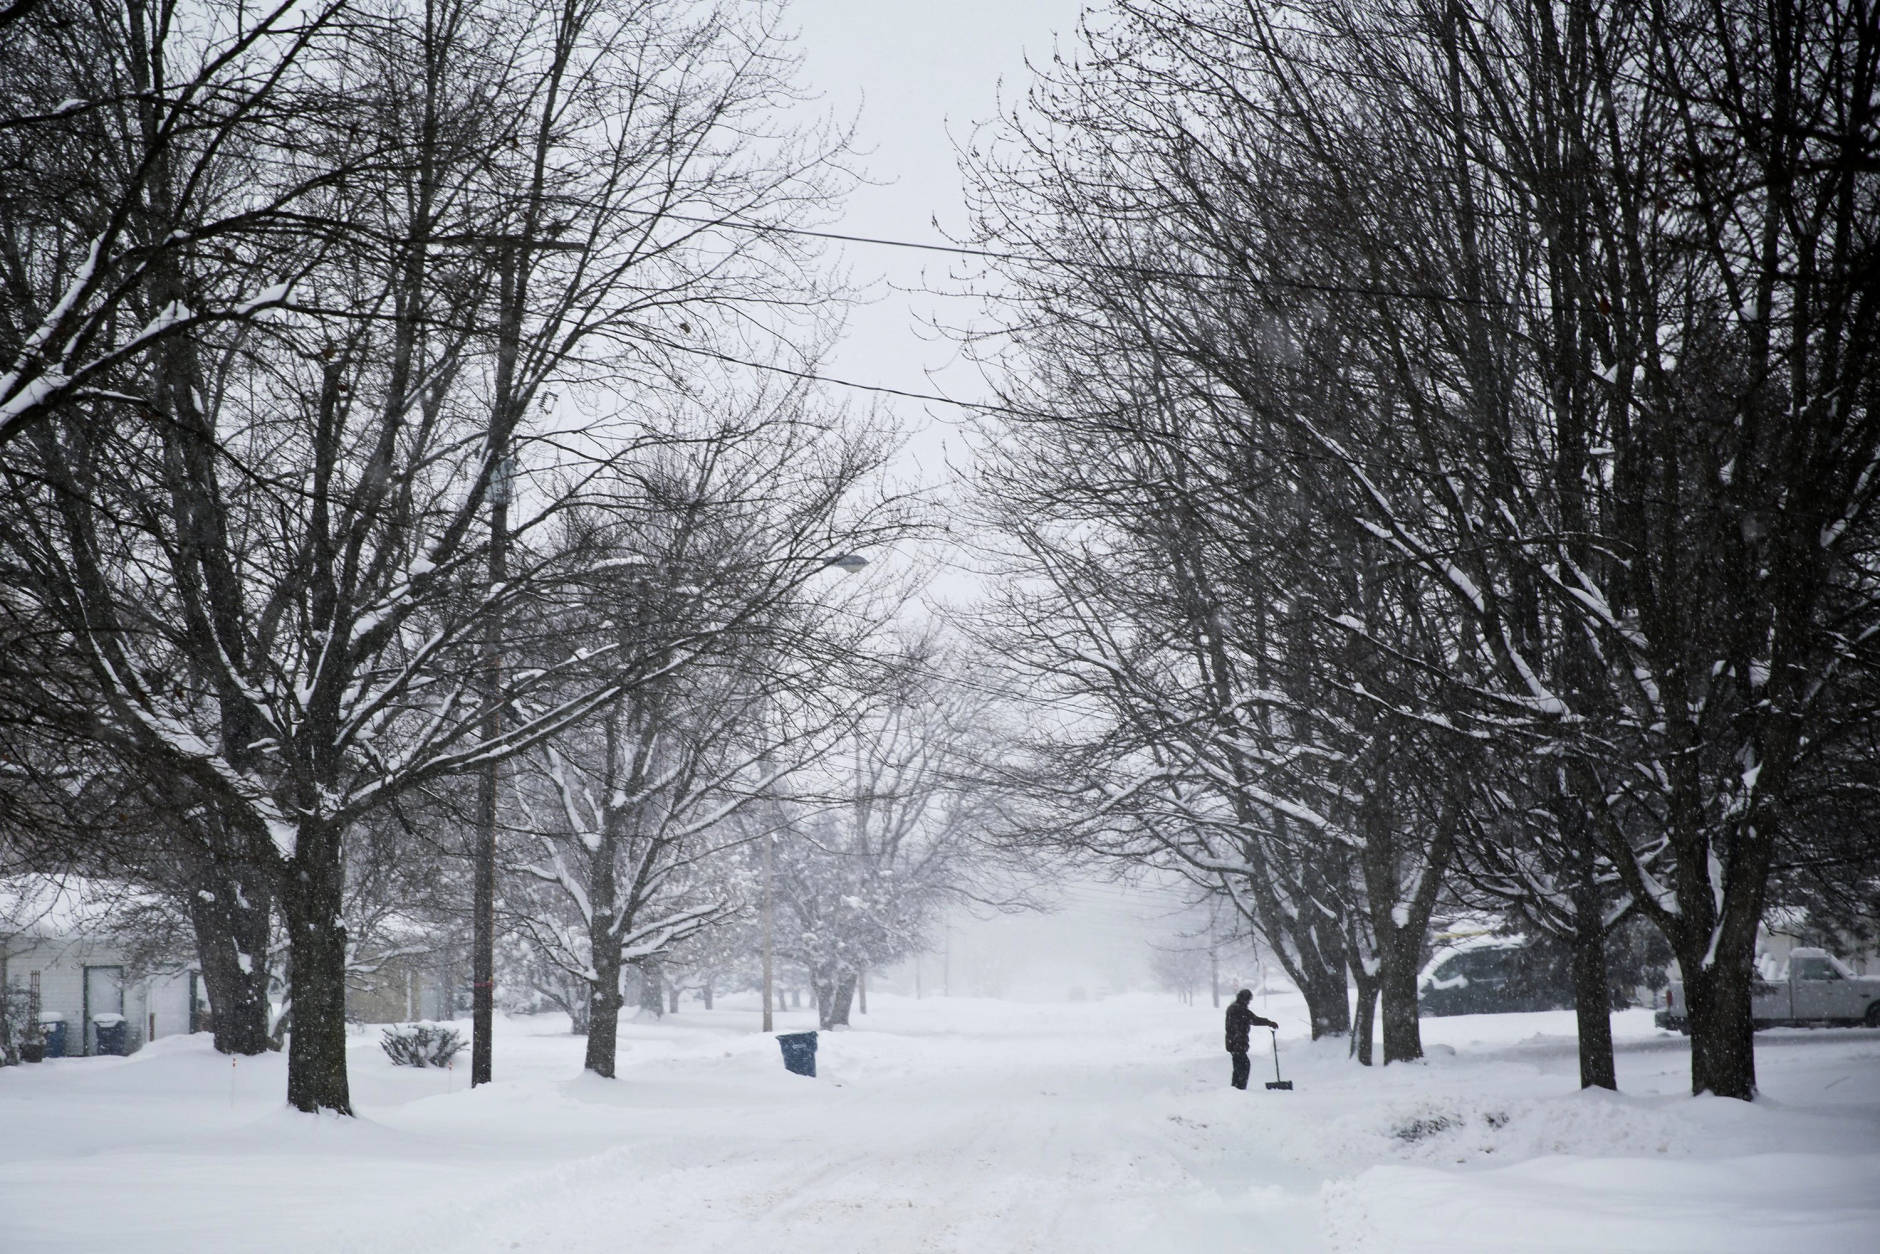 A man shovels the sidewalk in Kalamazoo, Mich., on Sunday, Dec. 11, 2016. Snow from snow showers earlier in the week have blanketed Kalamazoo with inches of snow. (Chelsea Purgahn/Kalamazoo Gazette-MLive Media Group via AP)